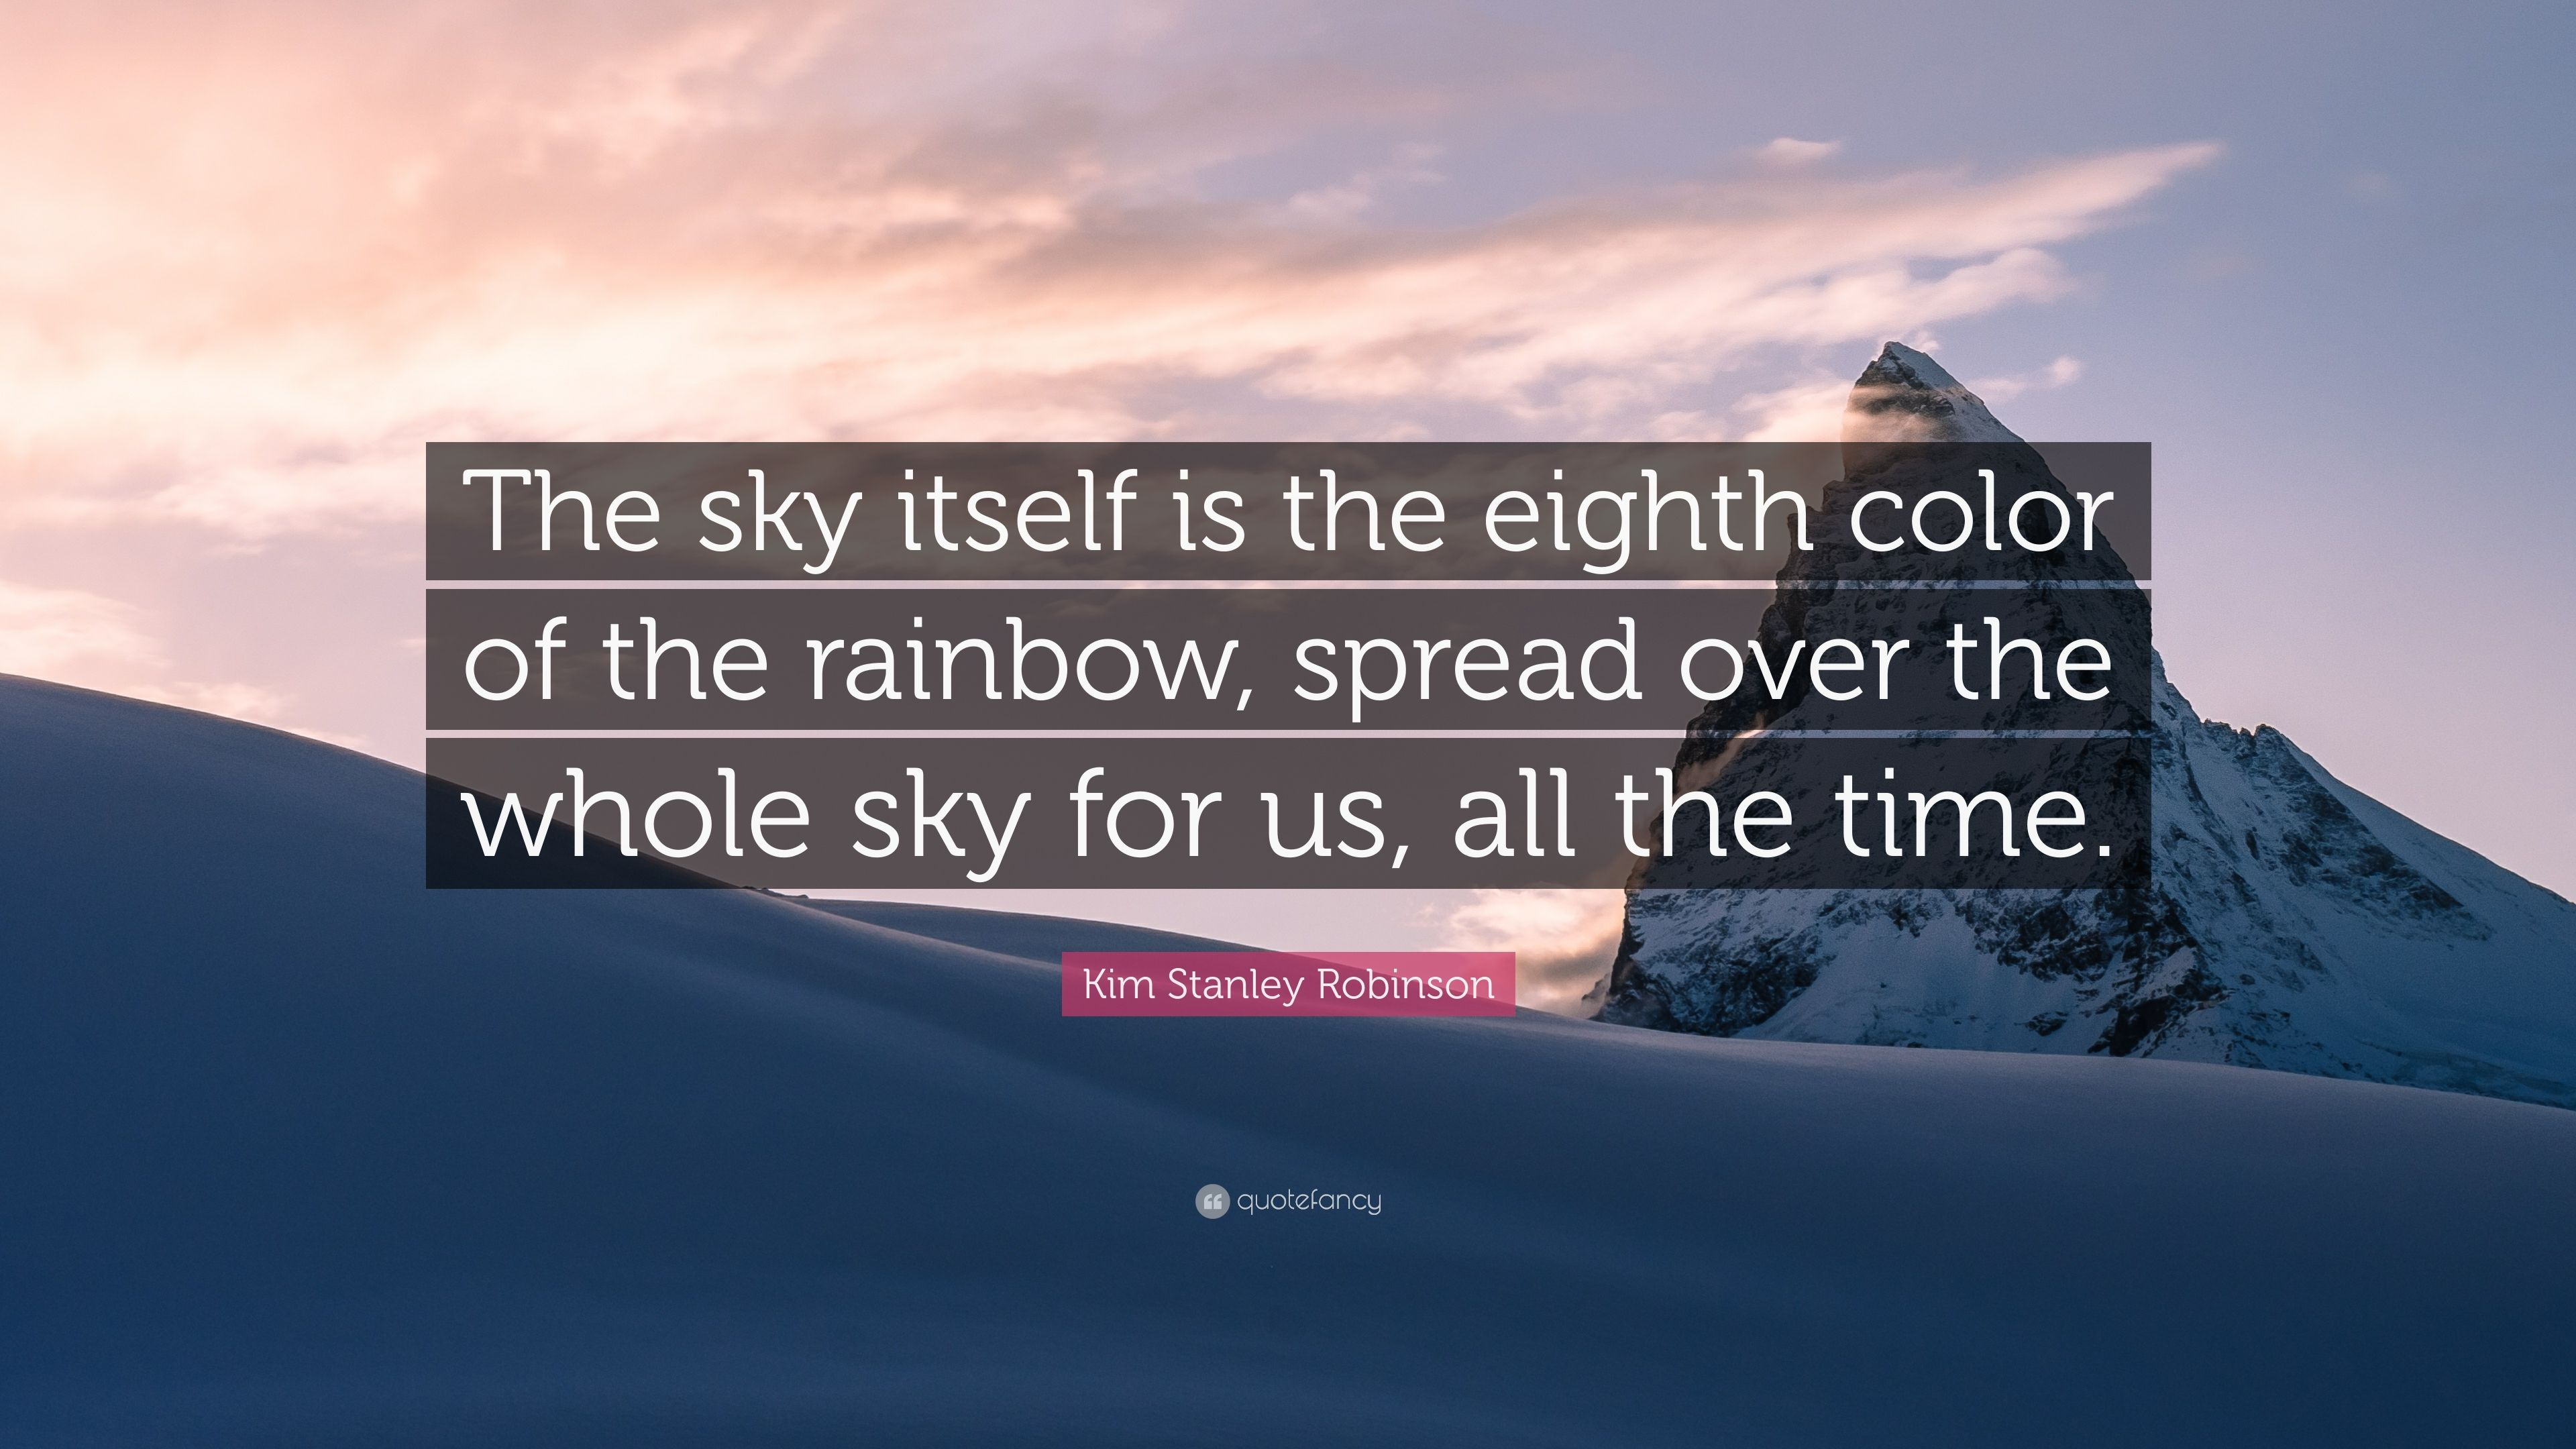 The Eighth Color of the Rainbow